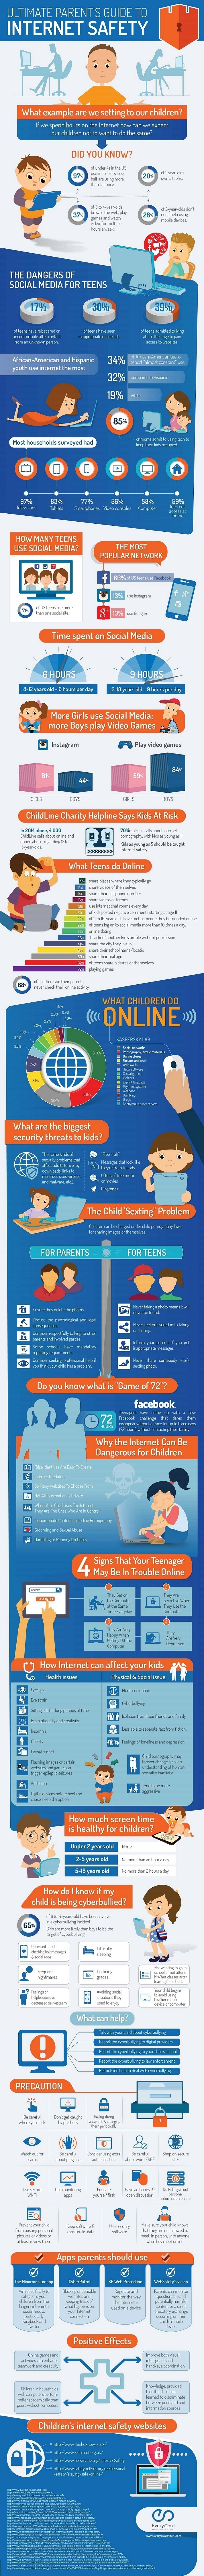 Parents Guide to Internet Safety